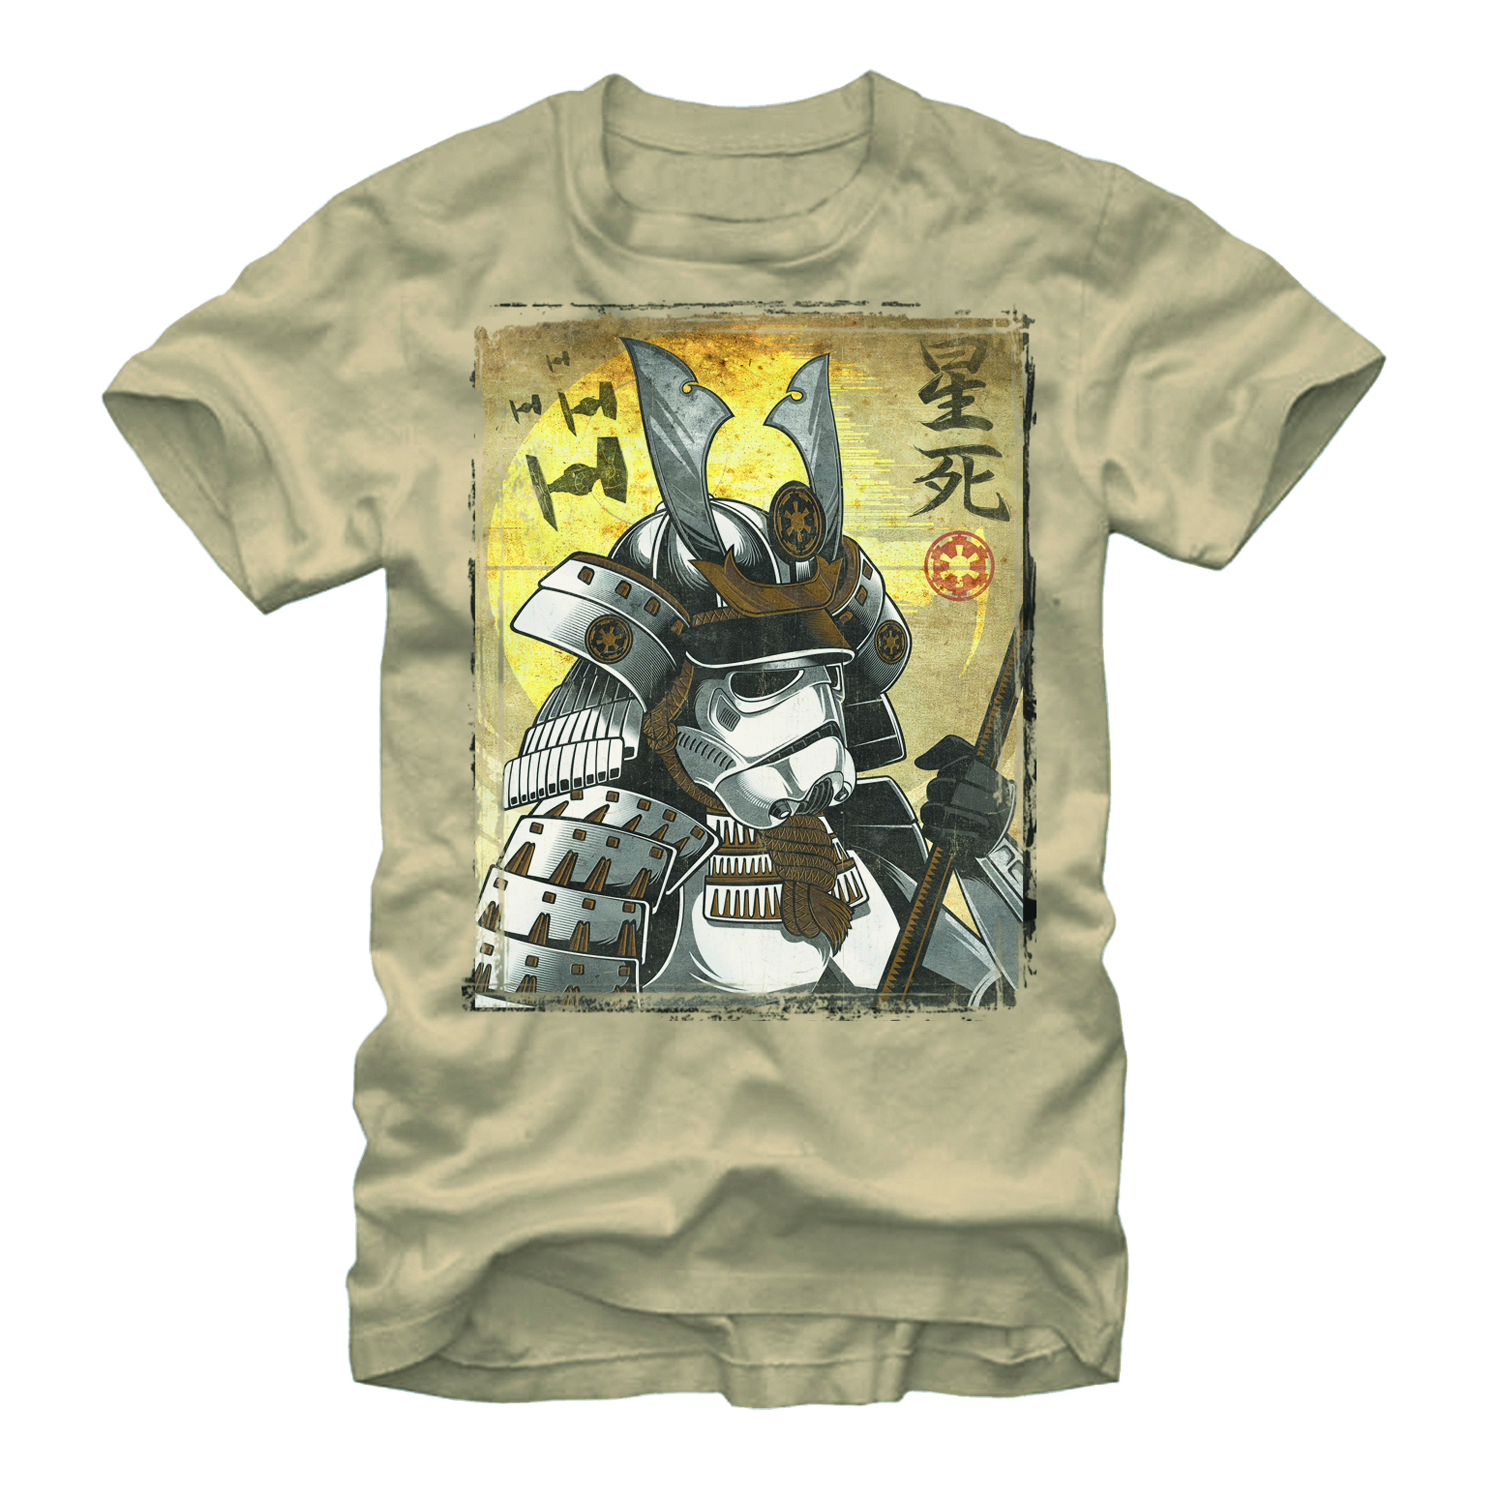 STAR WARS SAMURAI TROOPER T/S LG